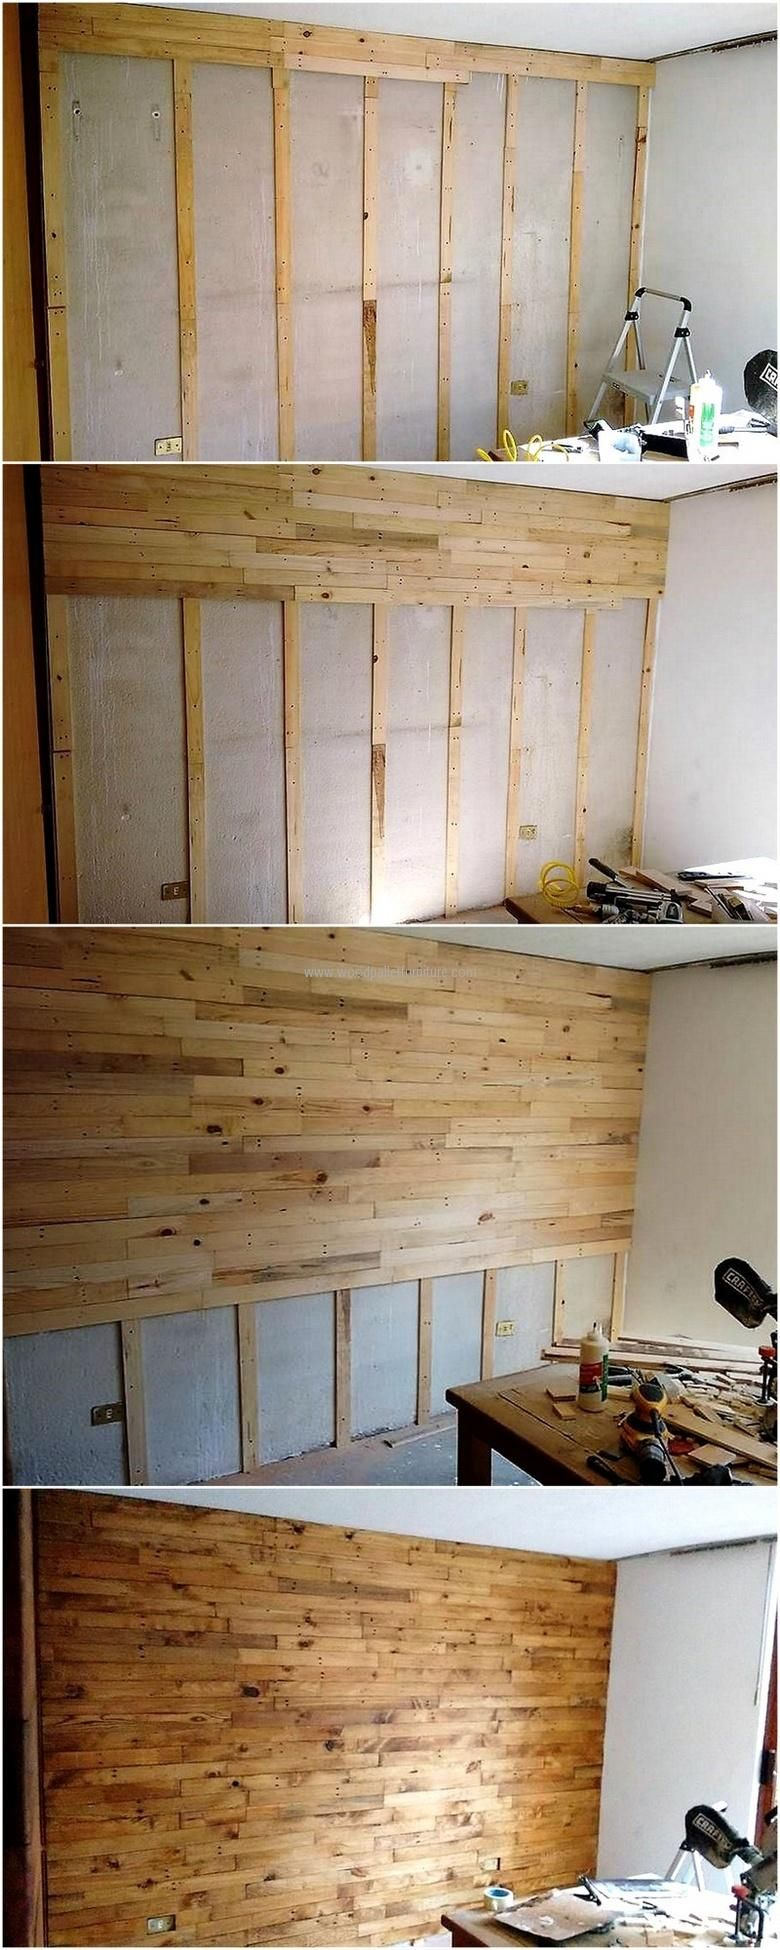 Holzvertäfelung Bilder Low Cost Diy Pallet Wood Creations Household Diy Pinterest